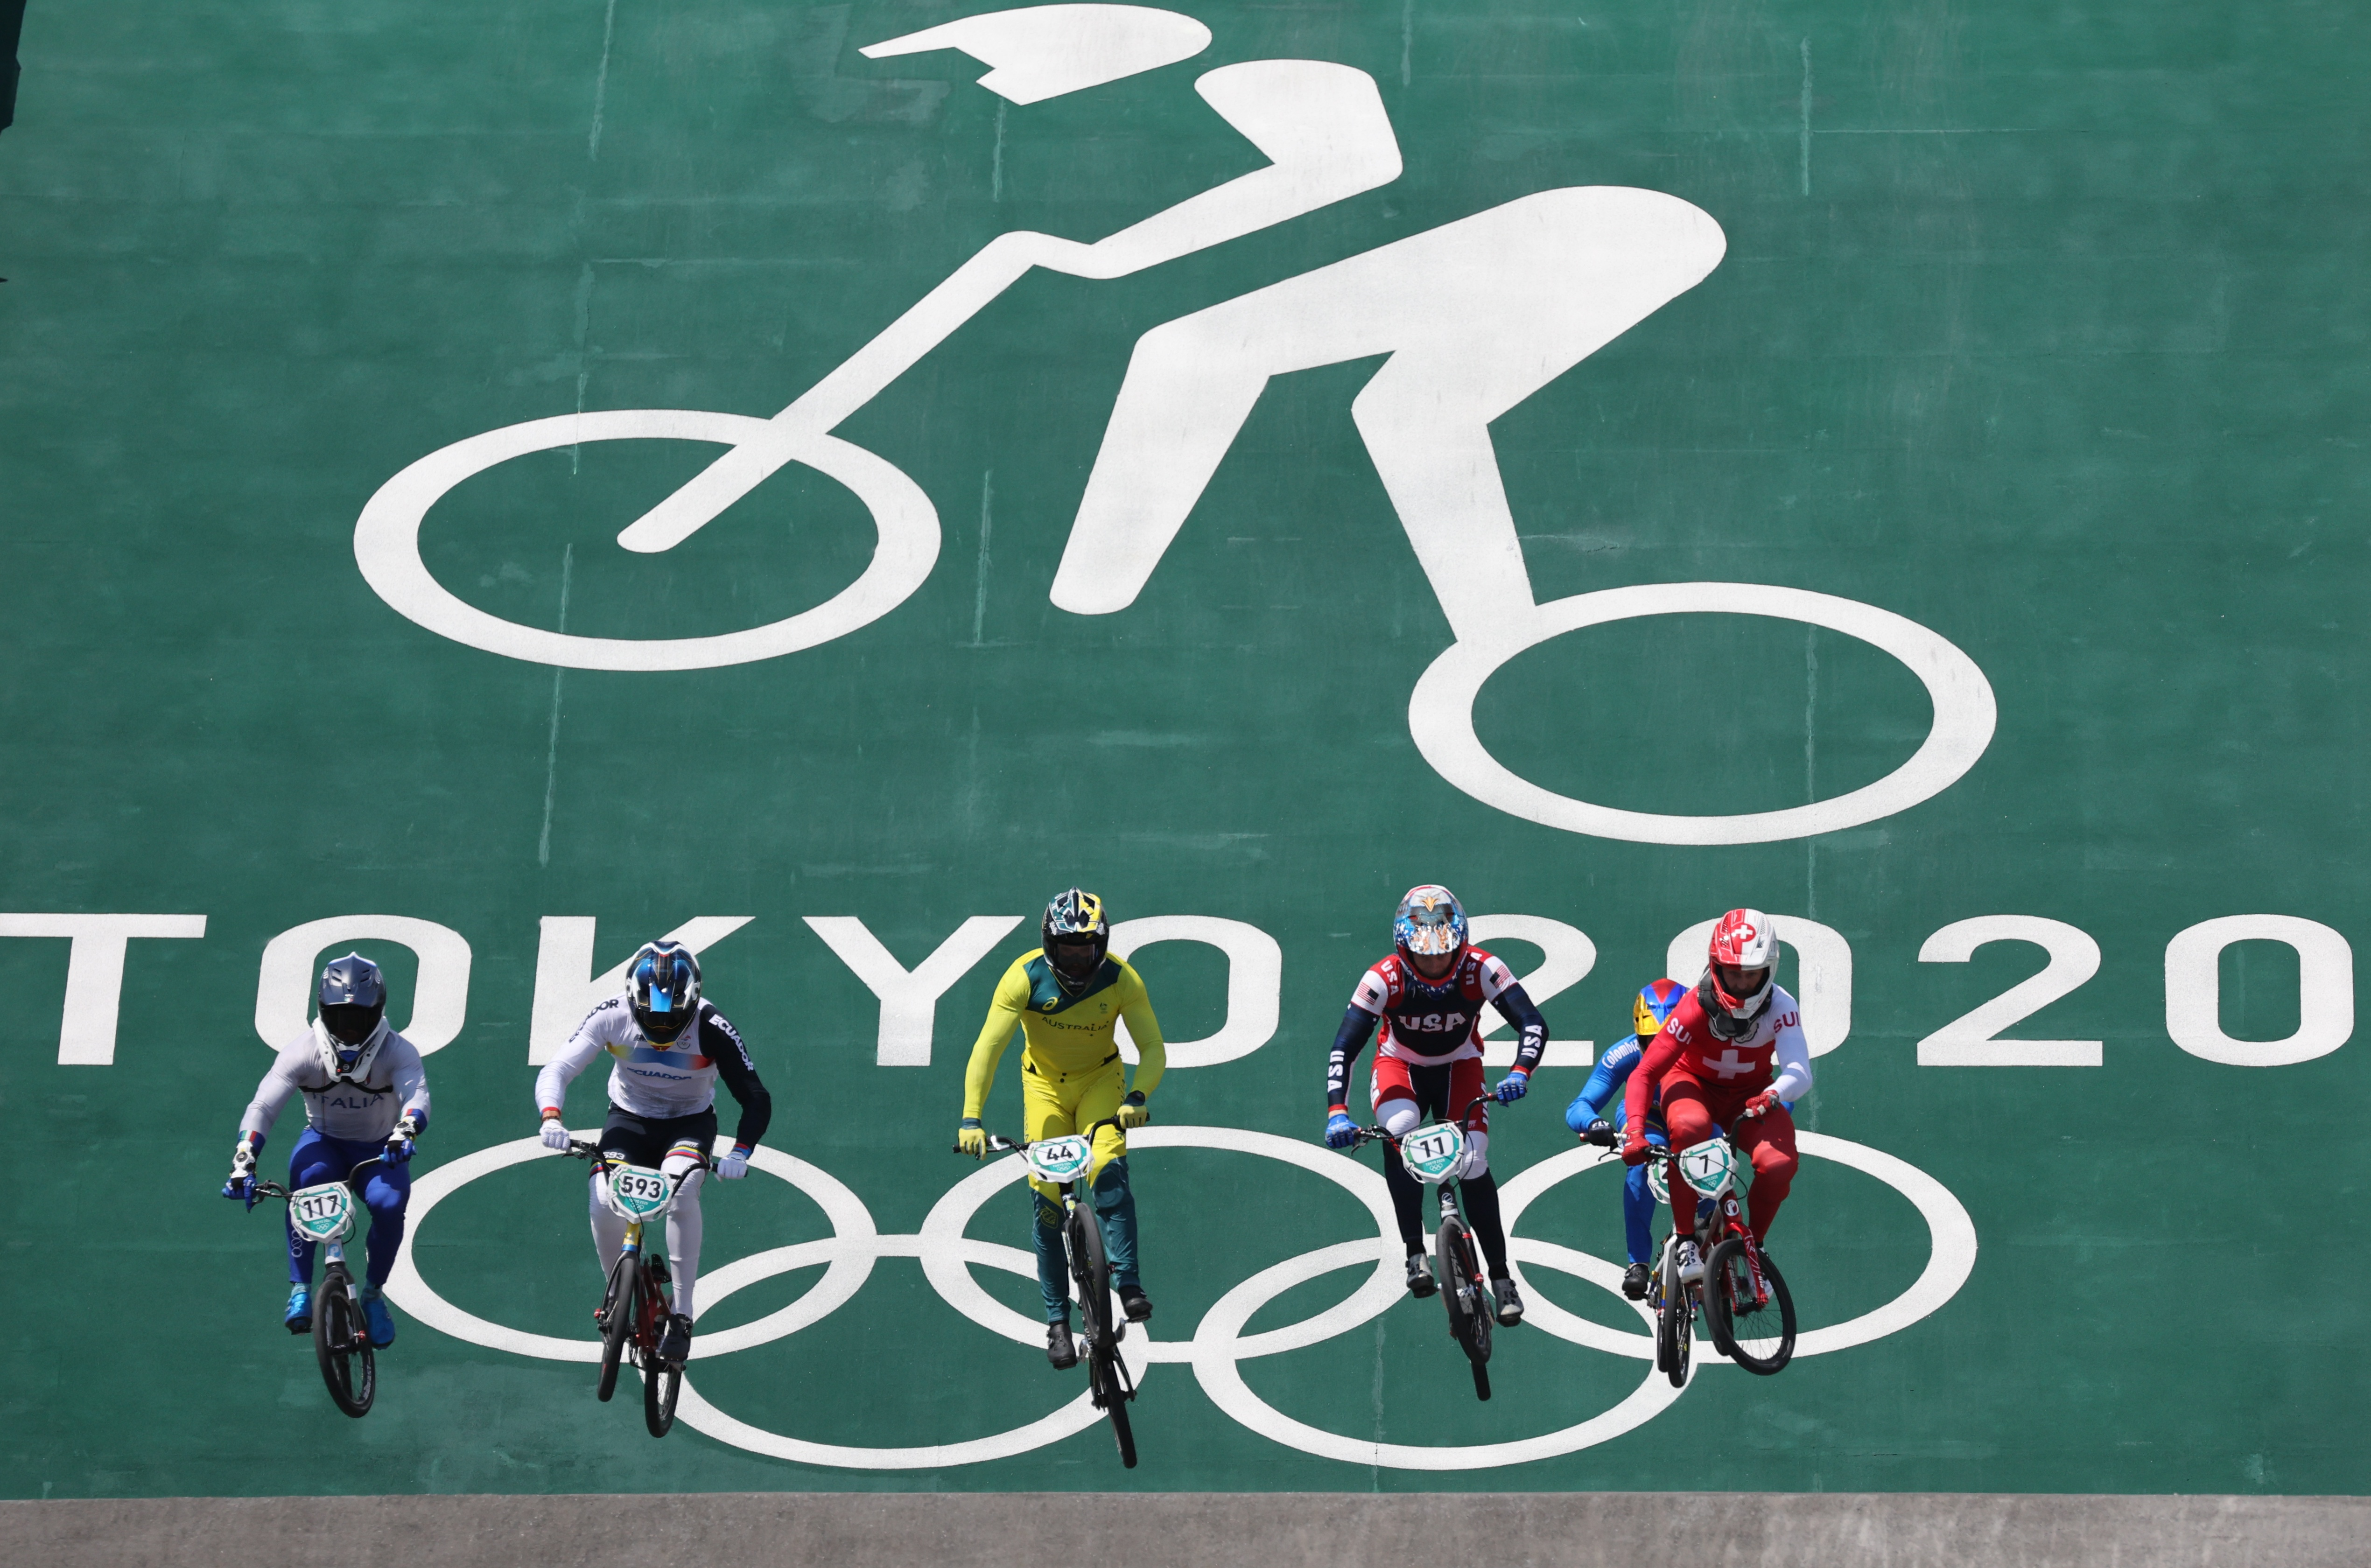 Tokyo 2020 Olympics - BMX Racing - Men's Individual - Quarterfinal - AUP - Ariake Urban Sports Park, Tokyo, Japan – July 29, 2021. Giacomo Fantoni of Italy, Alfredo Campo of Ecuador, Anthony Dean of Australia, Connor Fields of the United States, Carlos Ramirez of Colombia and David Graf of Switzerland in action. REUTERS/Christian Hartmann